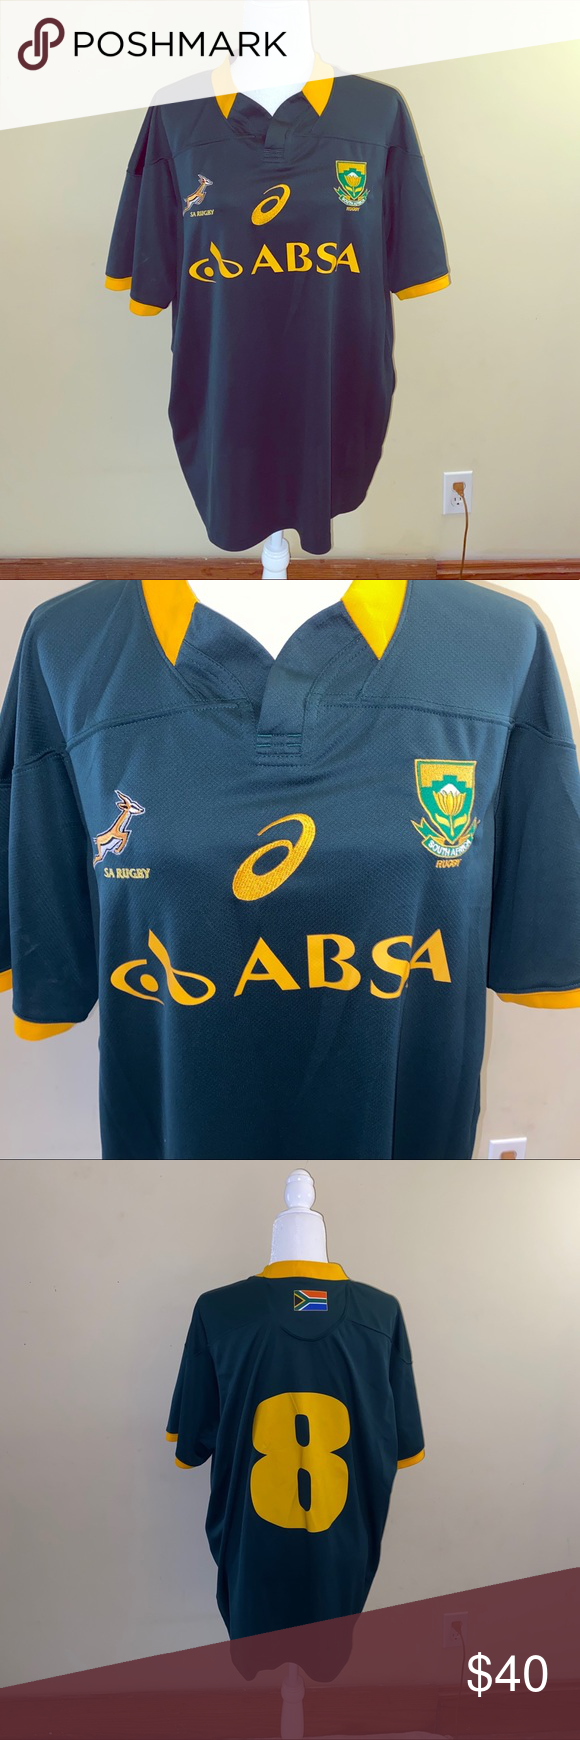 Asics South African Rugby Jersey Sz Xl Vintage South African Rugby Jersey Size Xl Asics Other Rugby Jersey South African Rugby Clothes Design